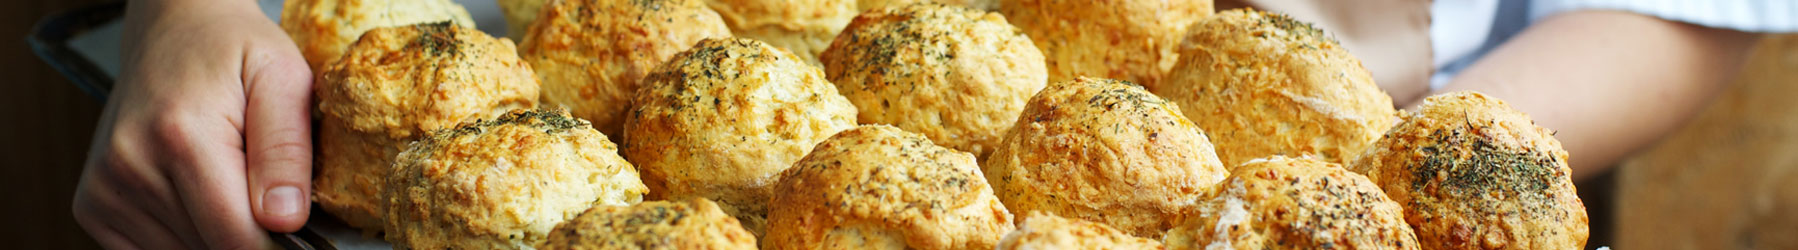 cheese scones at denstone hall farm shop and cafe